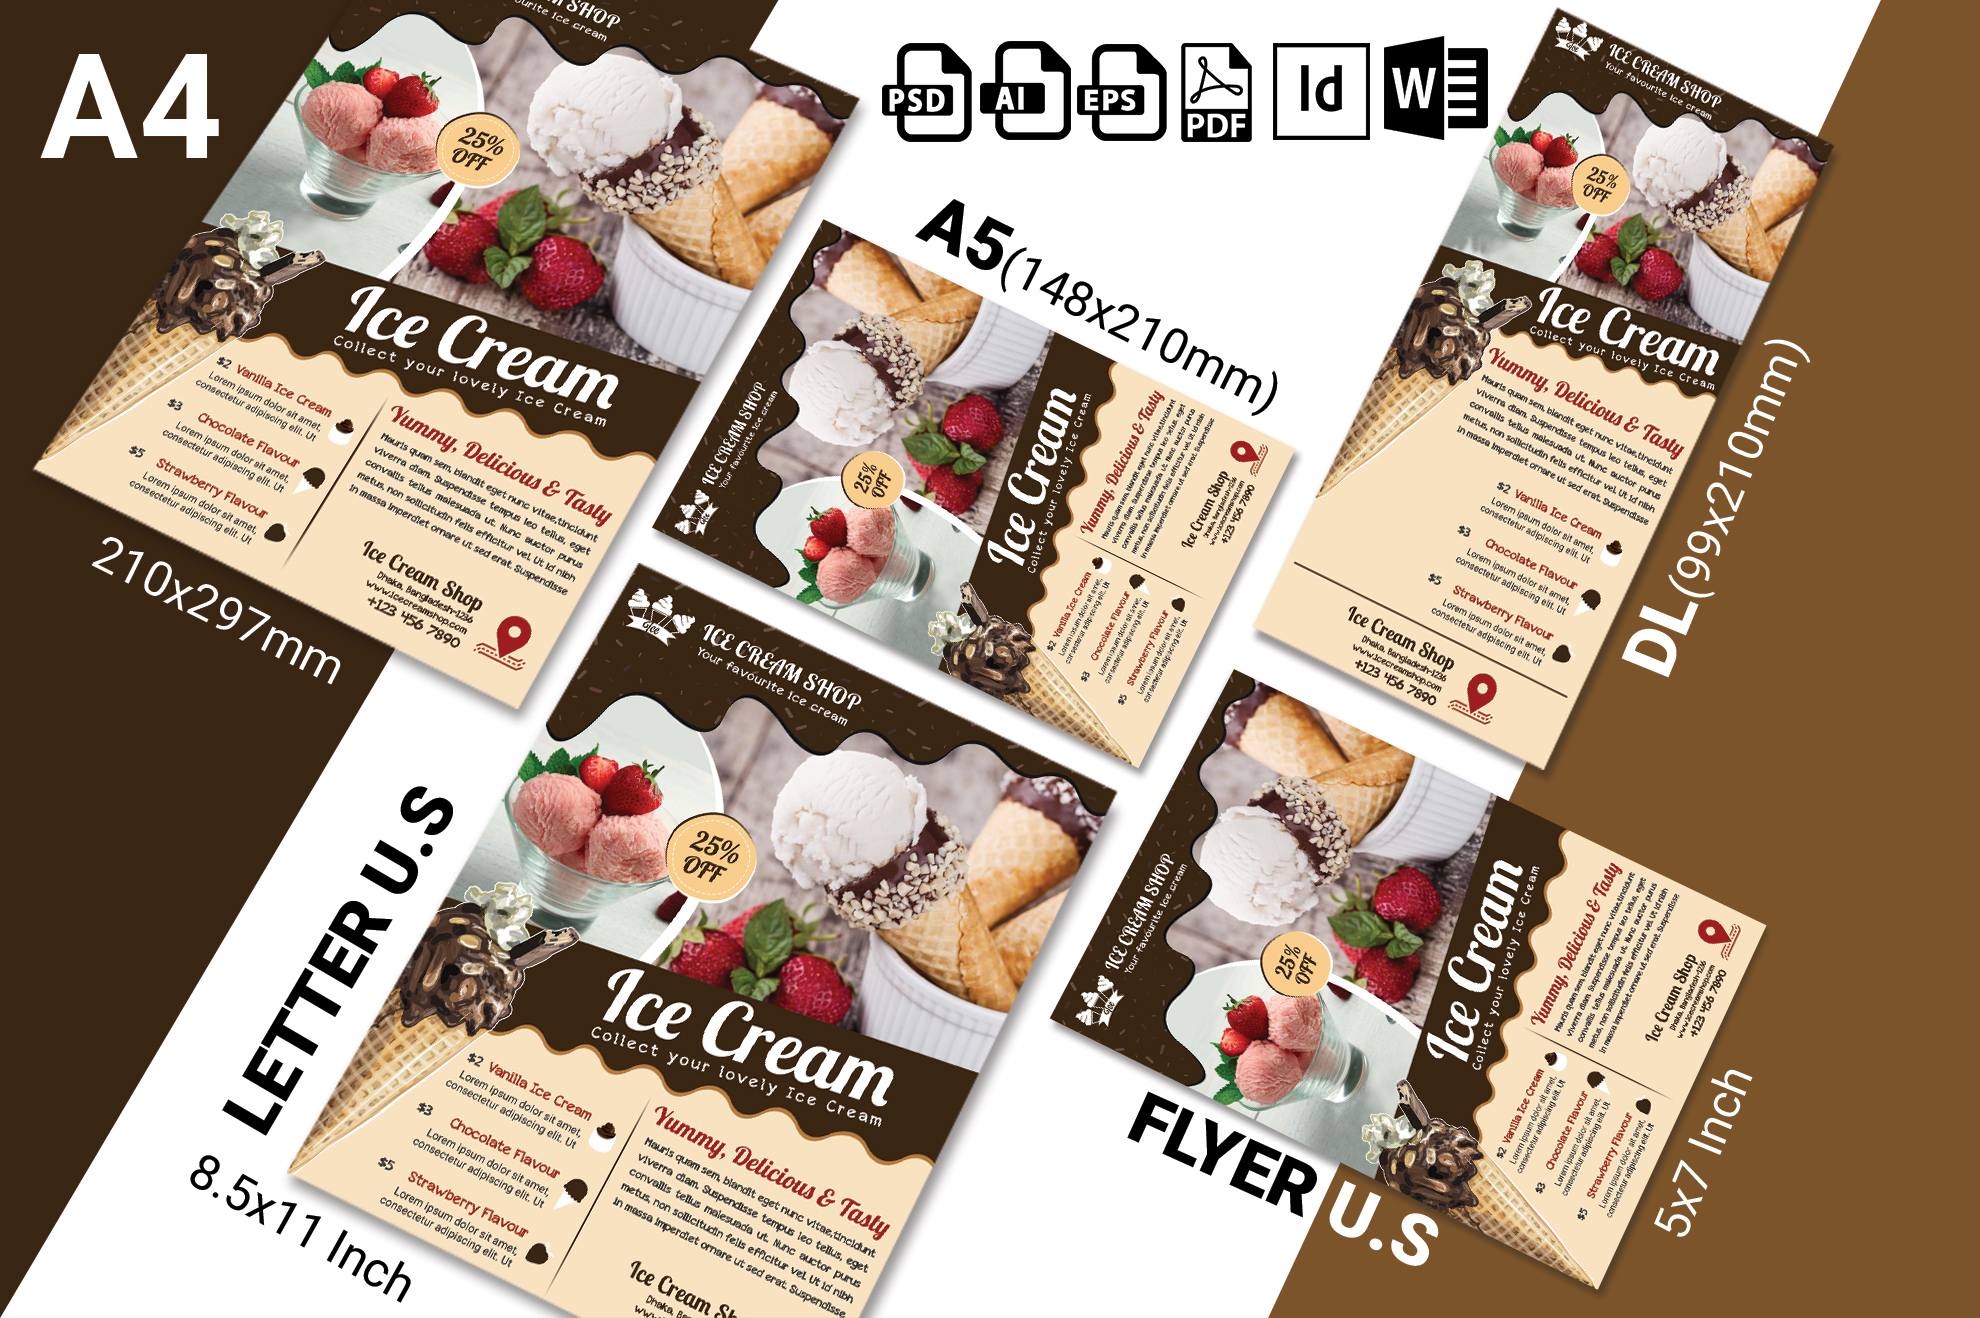 Ice Cream Shop Flyer Template Vol-03 example image 2